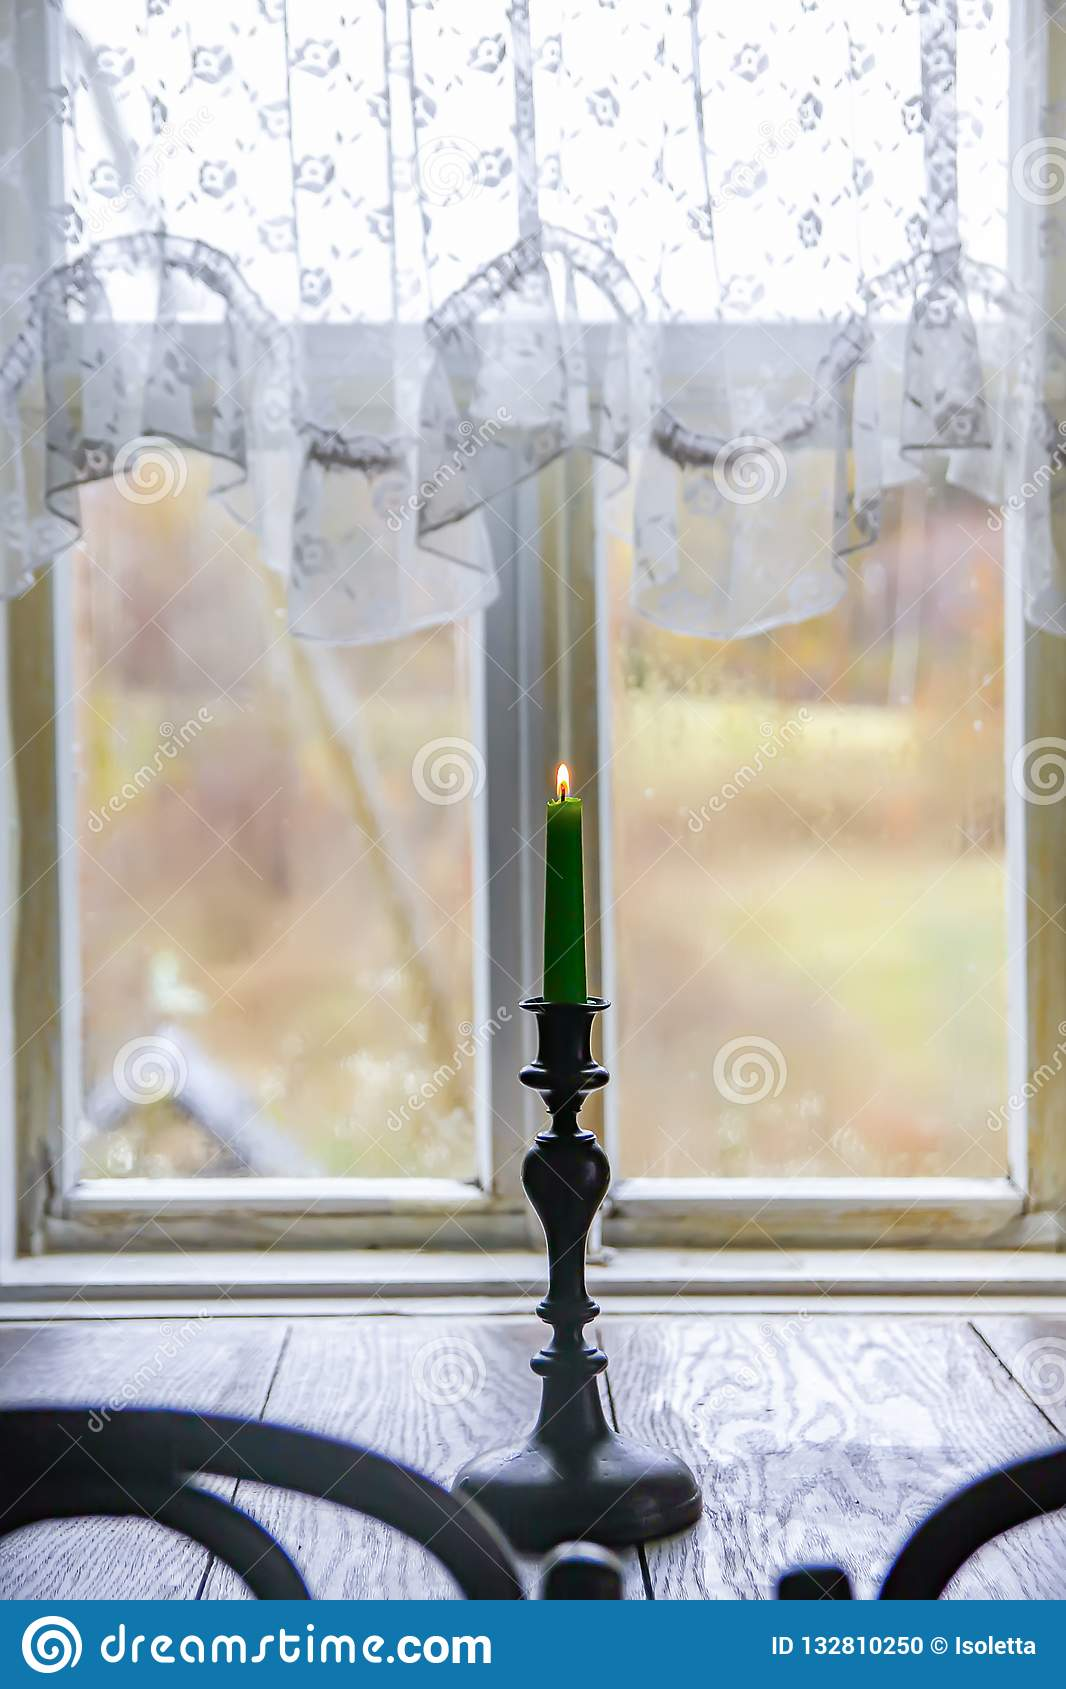 Candle In Vintage Copper Candle Holder On Wooden Table Near The Window In Rural House Interior Stock Photo Image Of Window Lilac 132810250